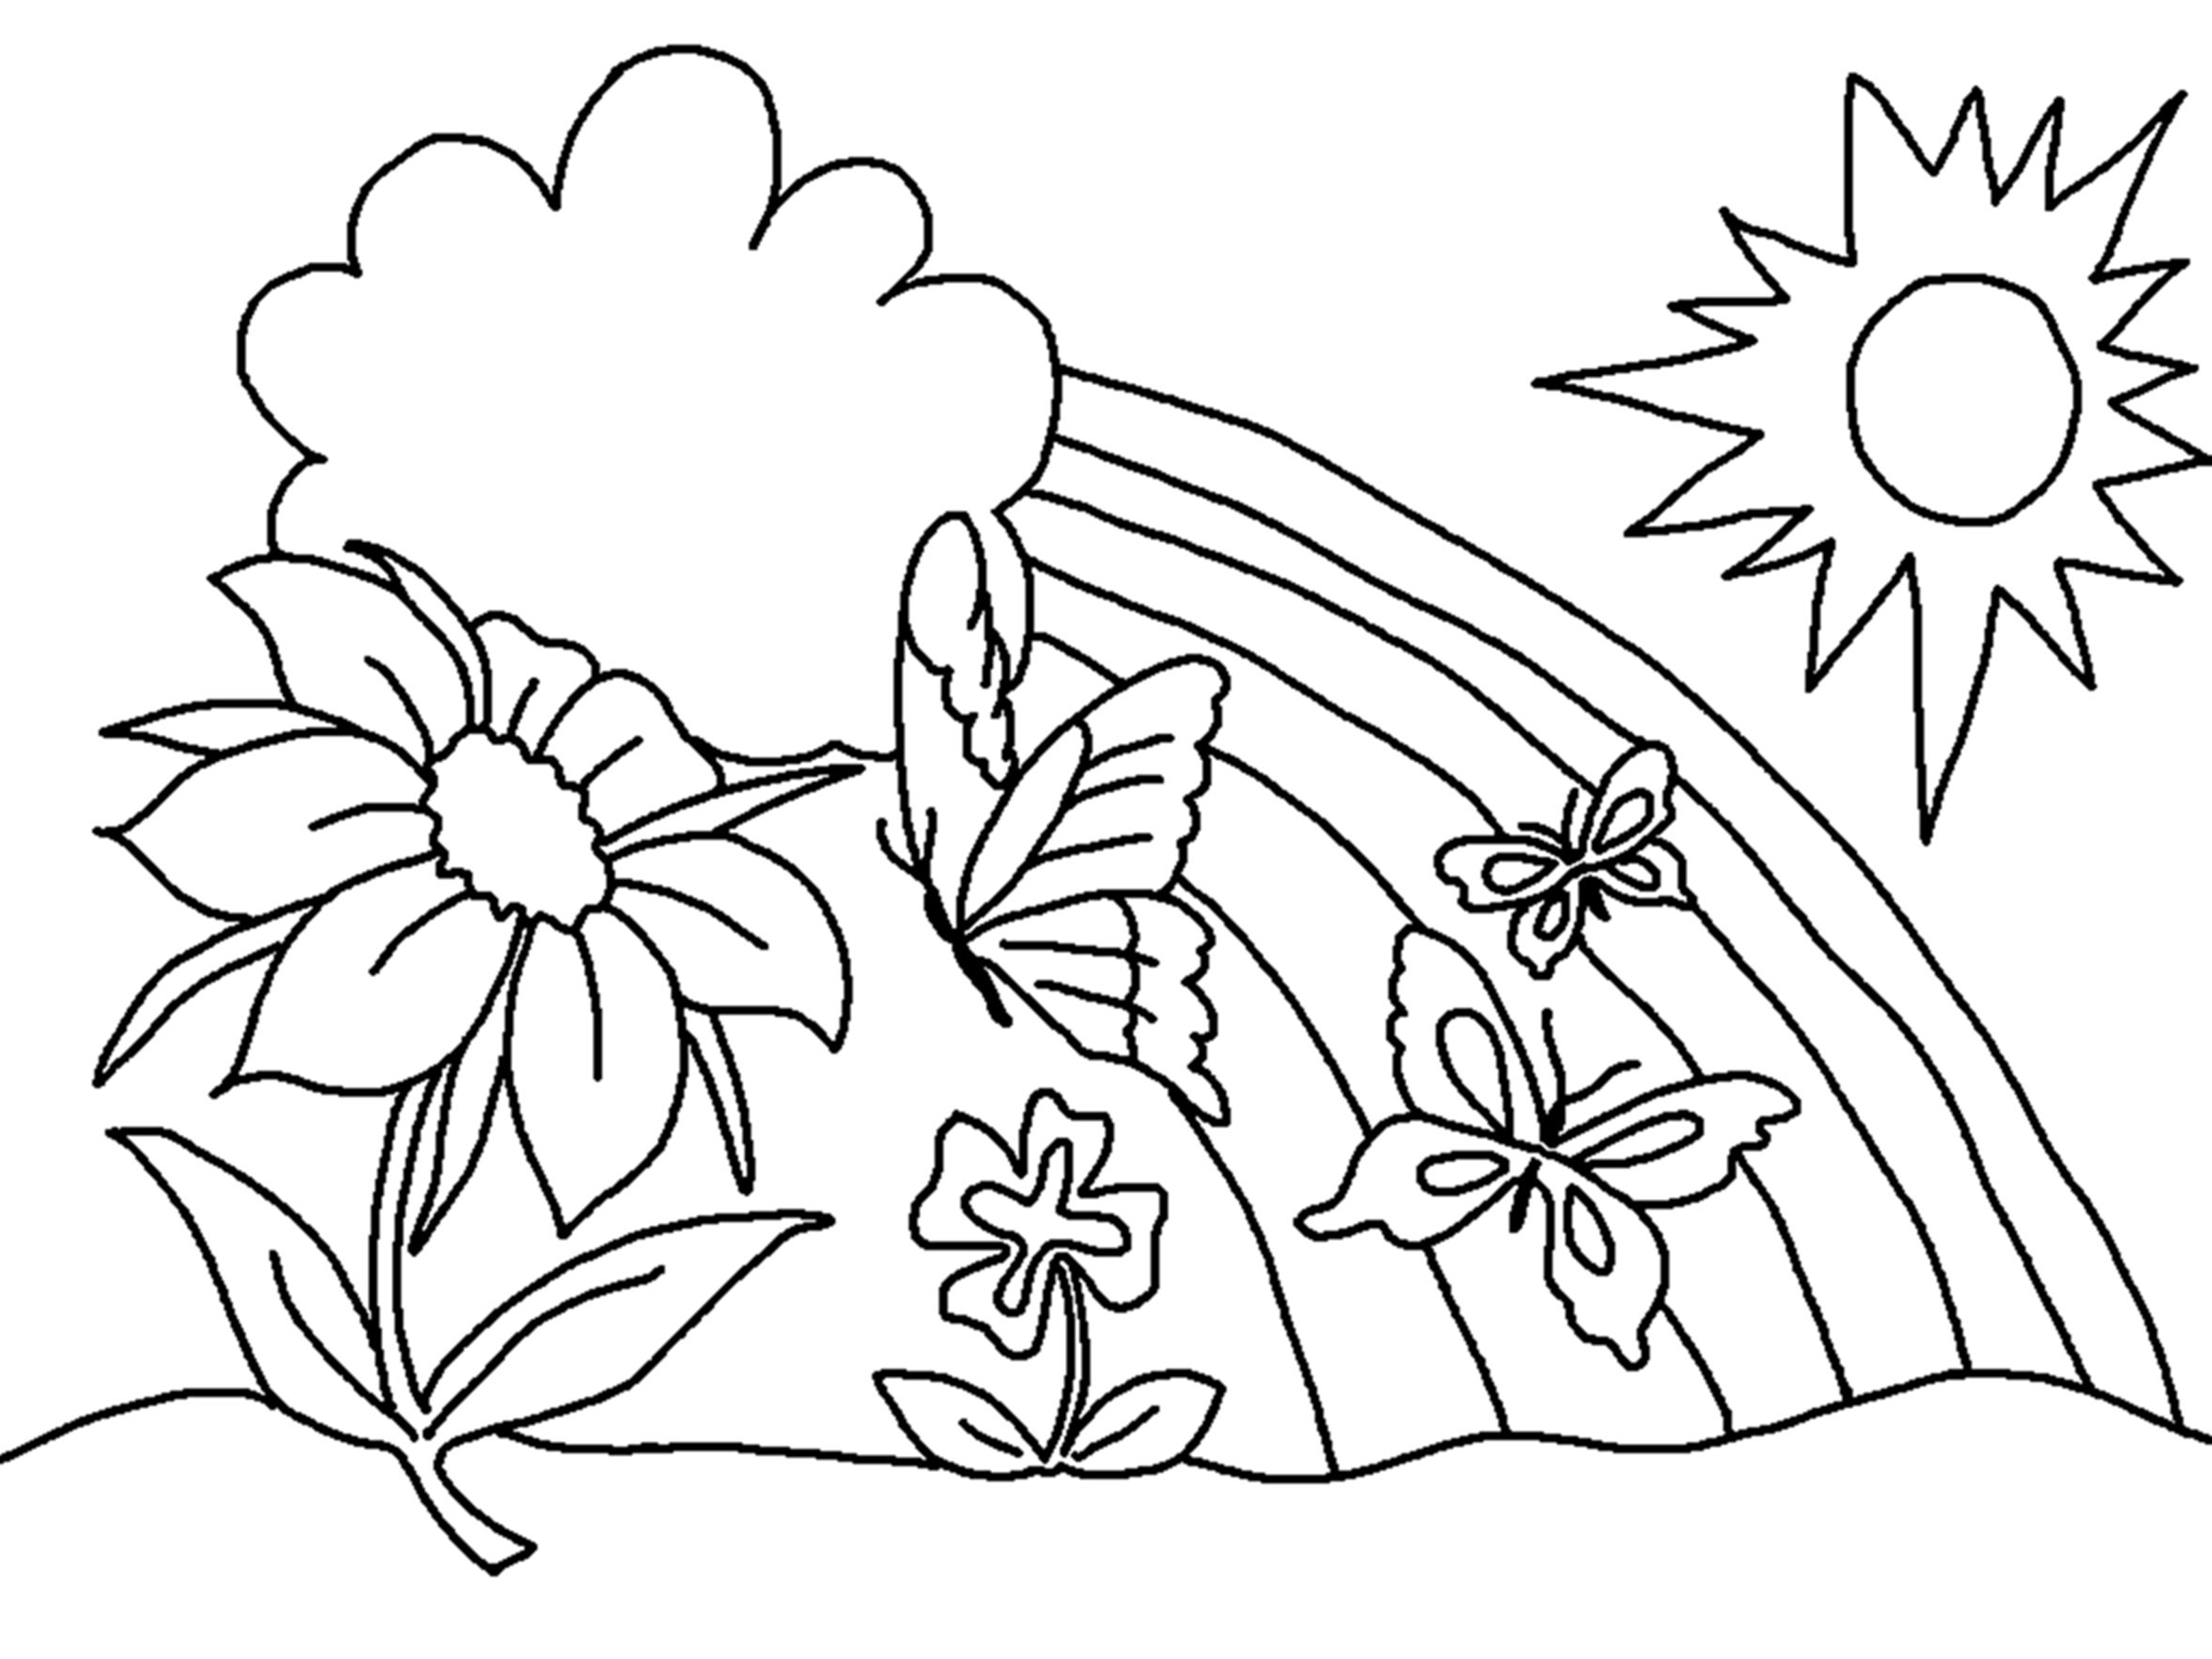 Free Printable Flower Coloring Pages For Kids Best Spring Coloring Sheets Printable Flower Coloring Pages Spring Coloring Pages